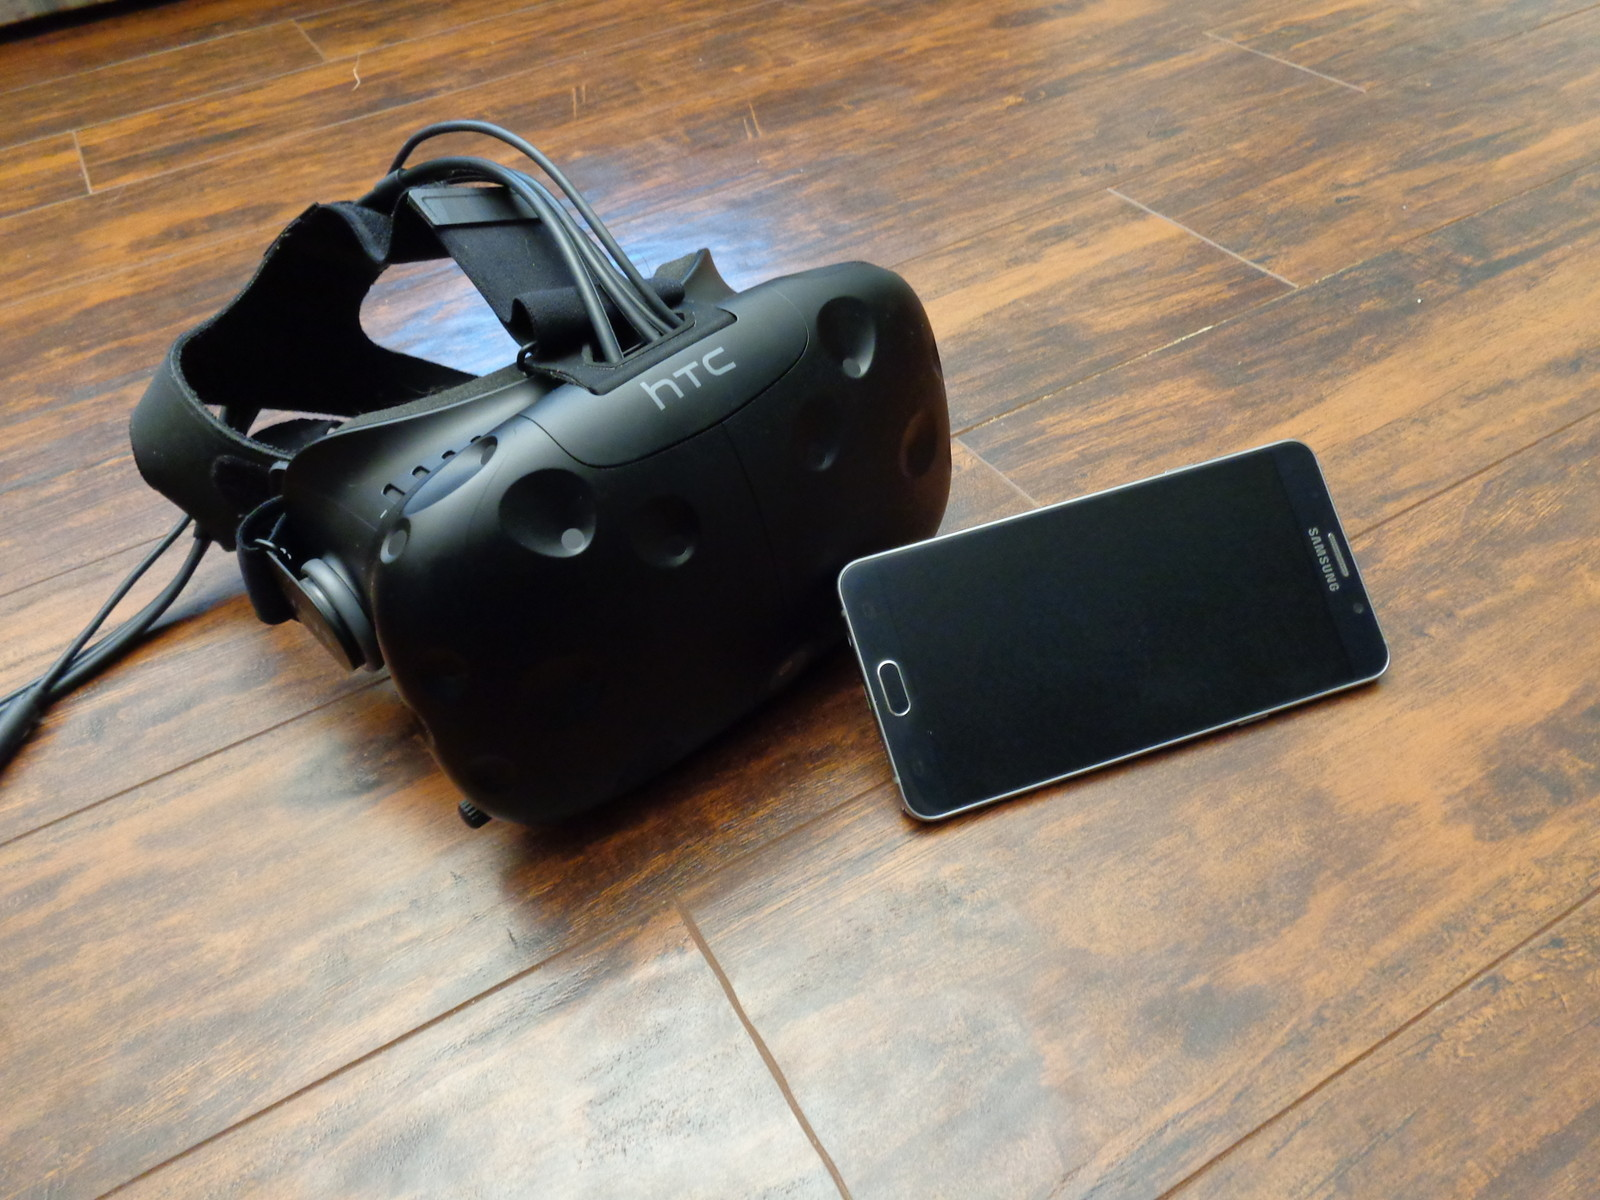 How to pair your phone with the HTC Vive